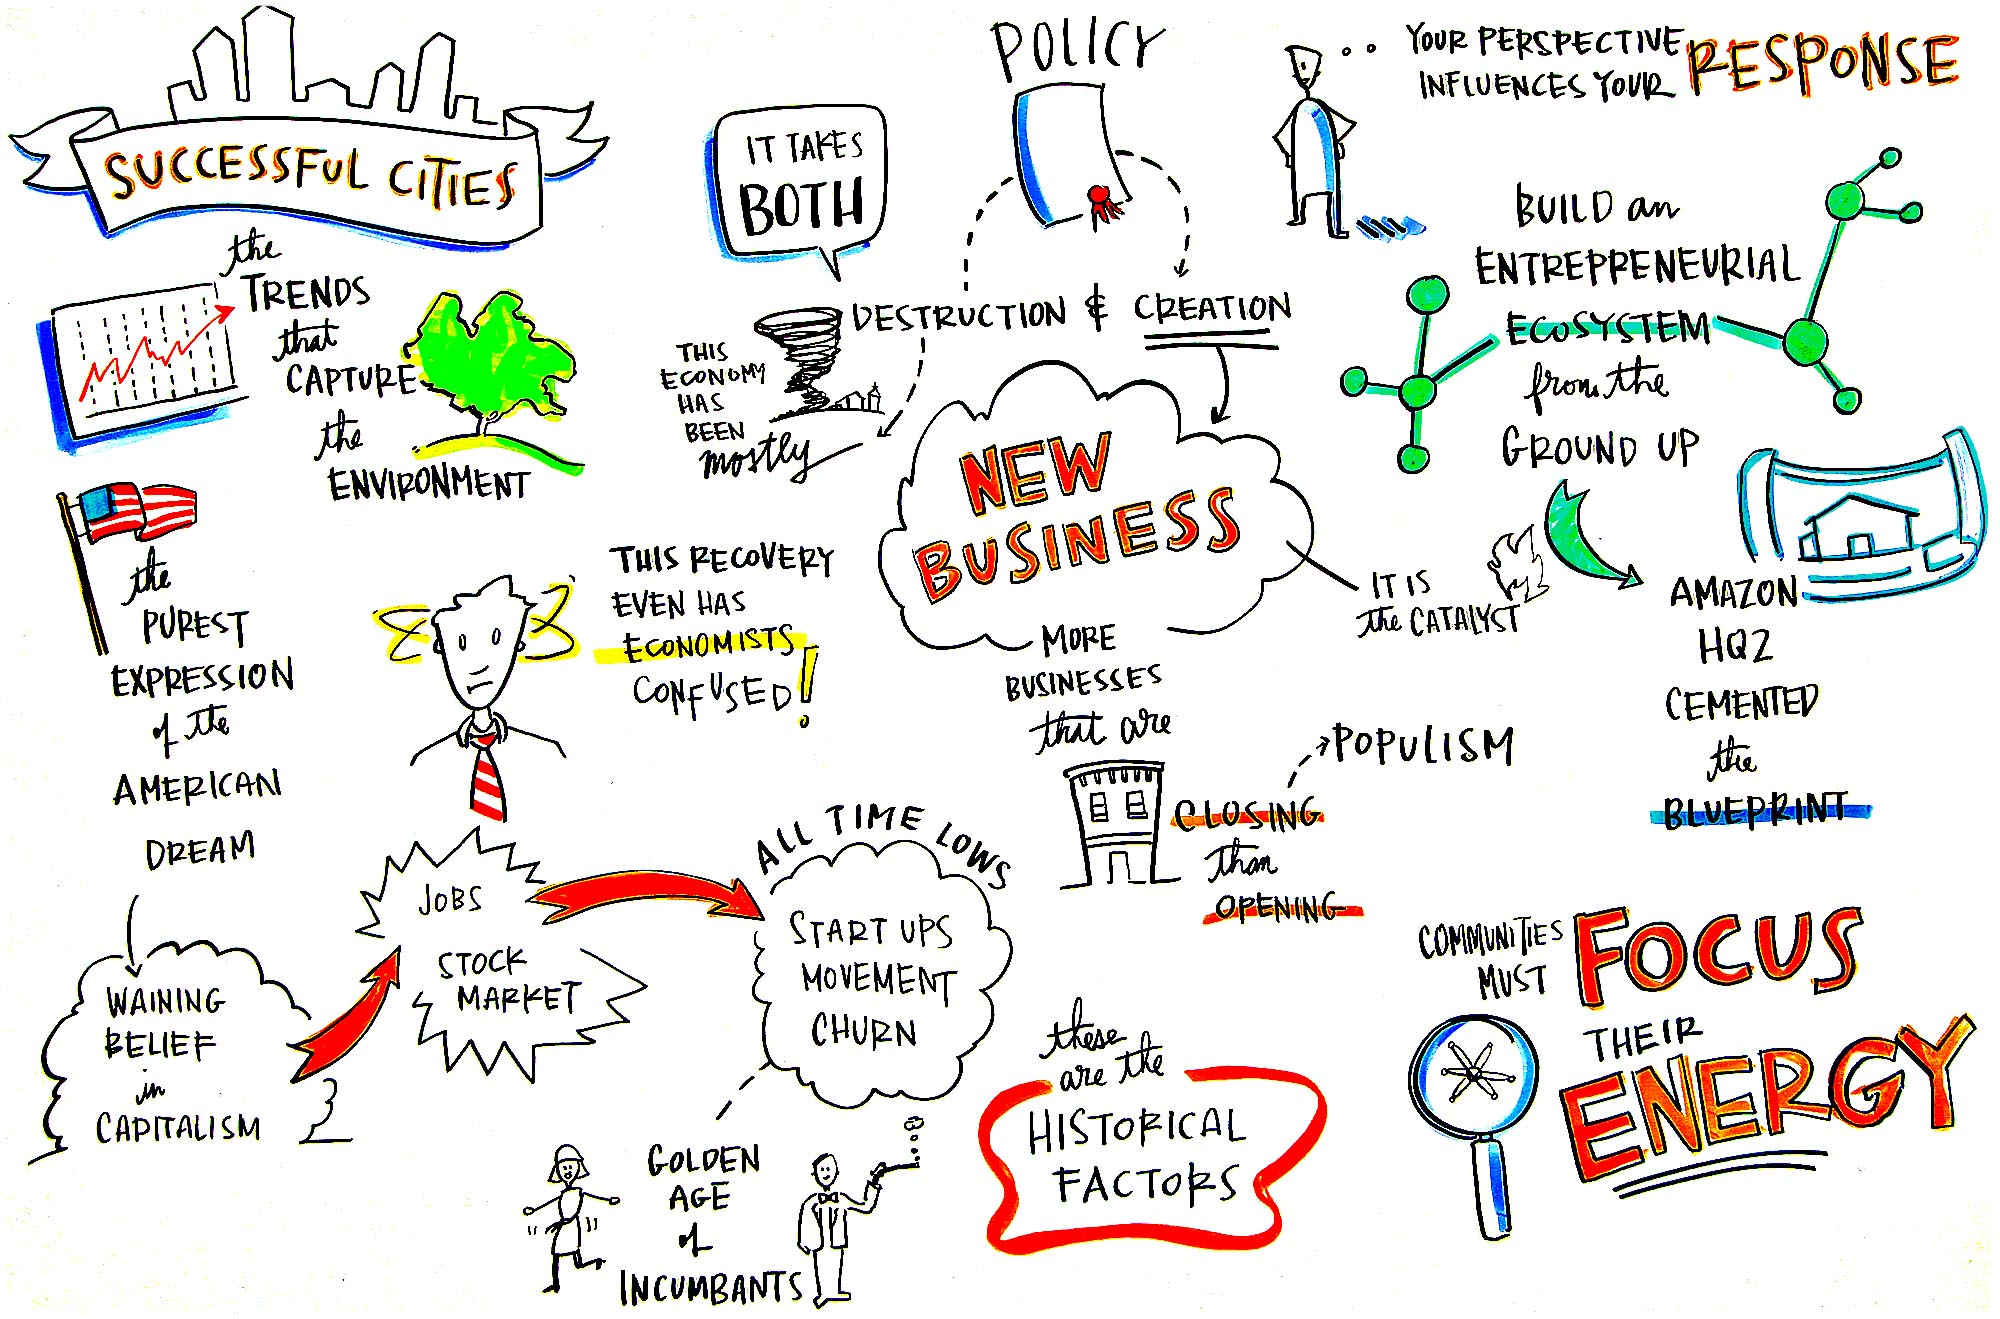 Expert Insights - John Lettieri - Scribing 1 | Mayors Conference 2017